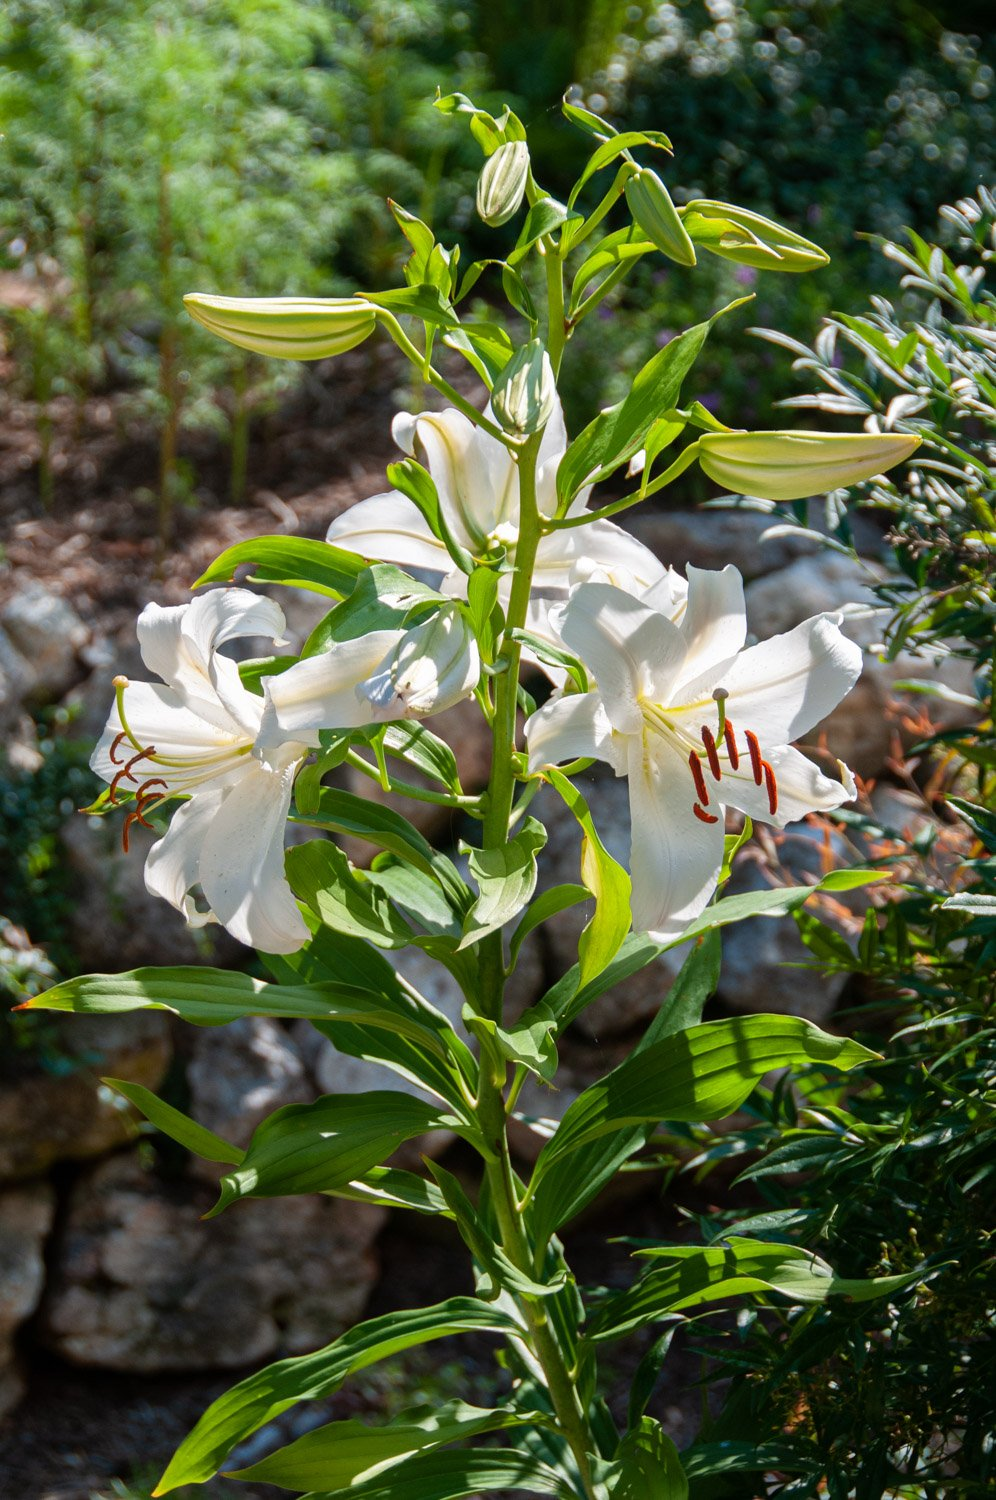 White trumpet blooms of Oriental Lily 'Casa Blanca' held on a tall, sturdy stalk